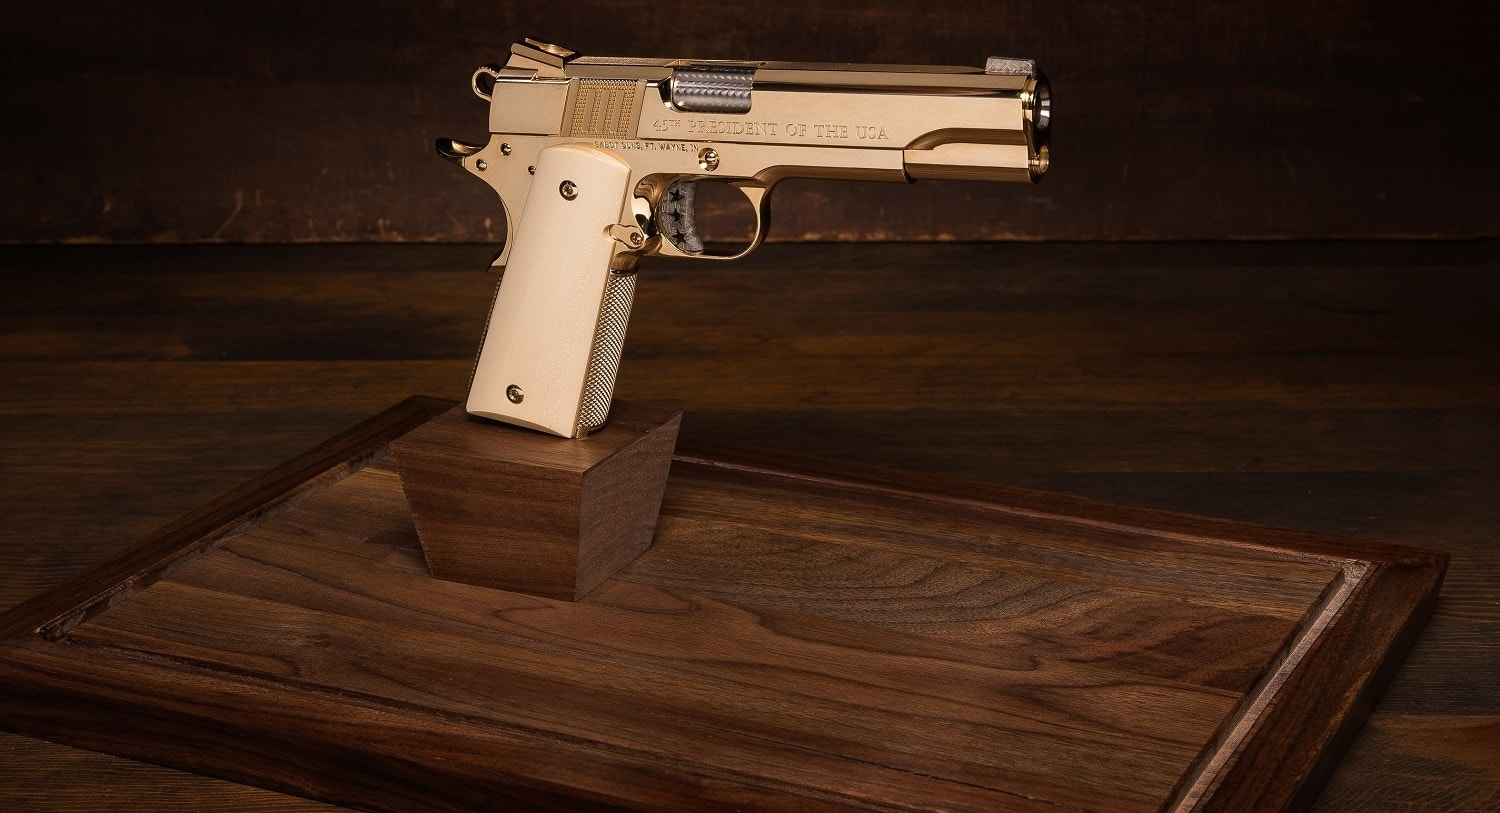 Prices for the 44 guns that will be made available from the run are expected to range from $15,000 to $50,000 depending on the appeal of the serial number to individual buyers and organizations. (Photo: Cabot)